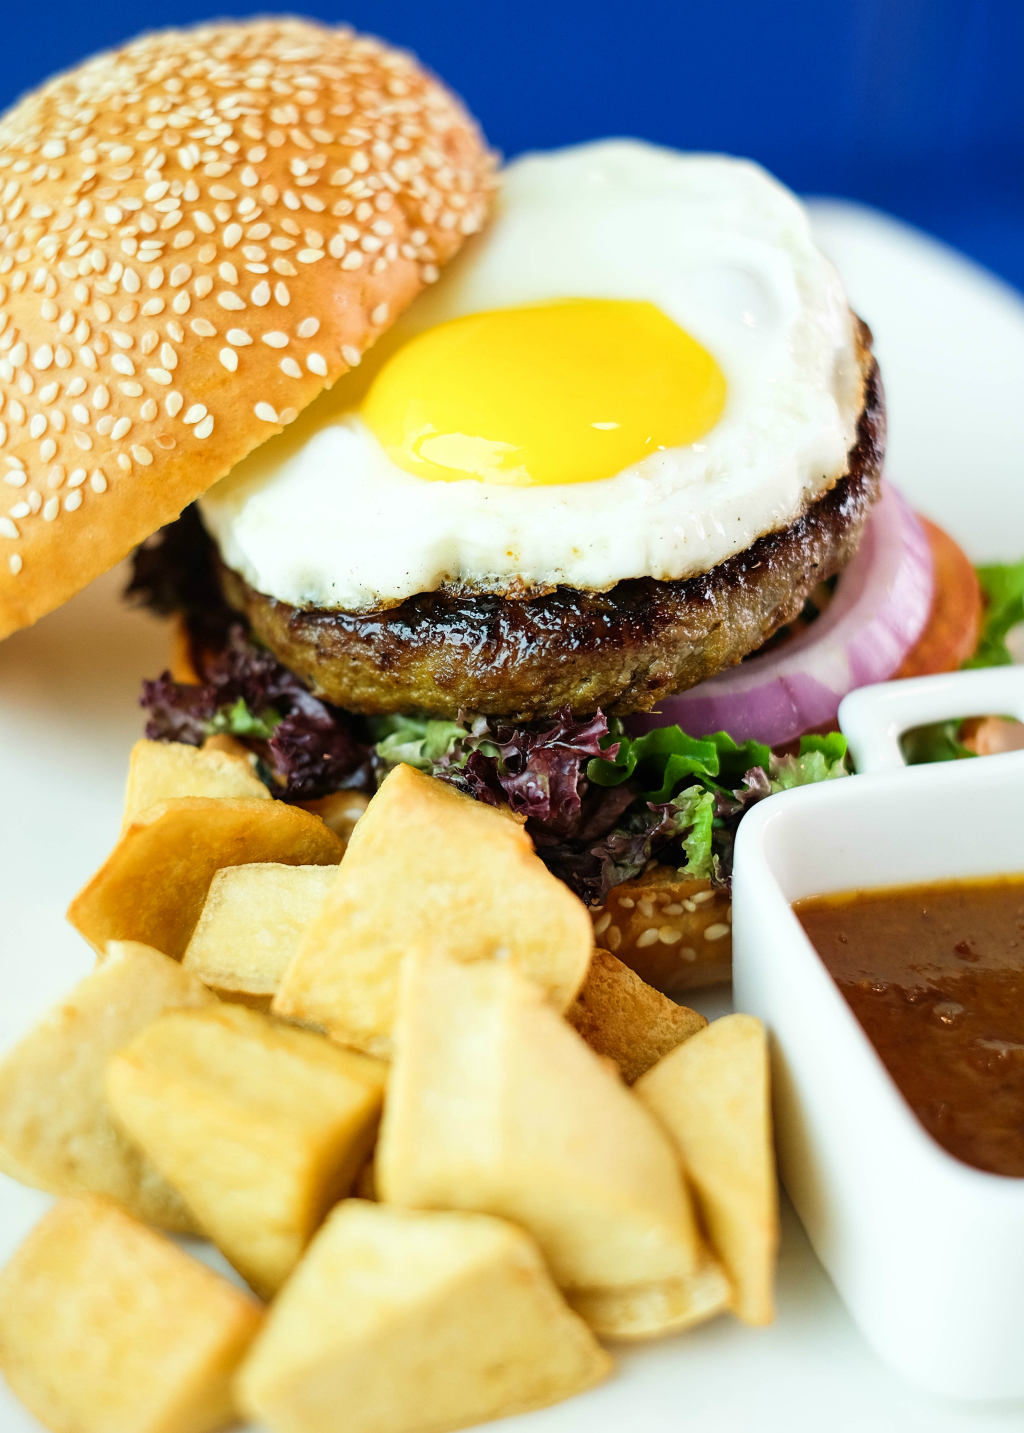 Blue Lagoon Restaurant in Superstar Gemini: satay burger with a patty that is flvoured with peanut sauce with sunny side up